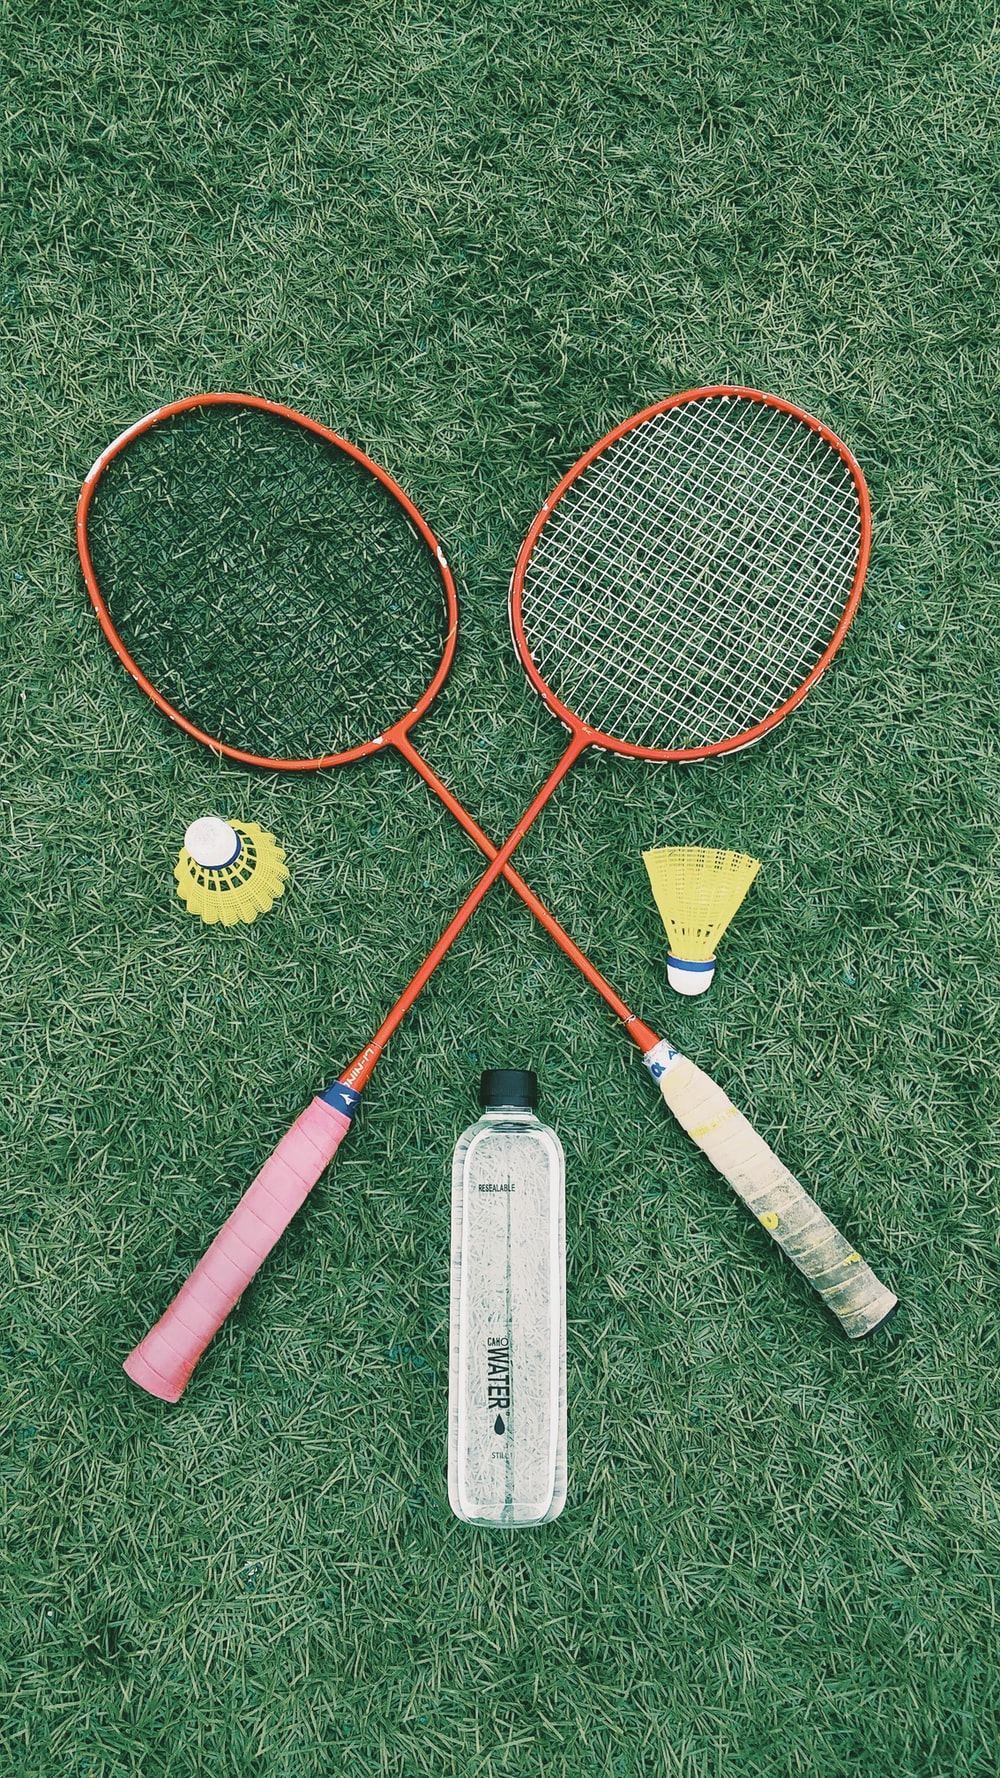 pair of red badminton rackets